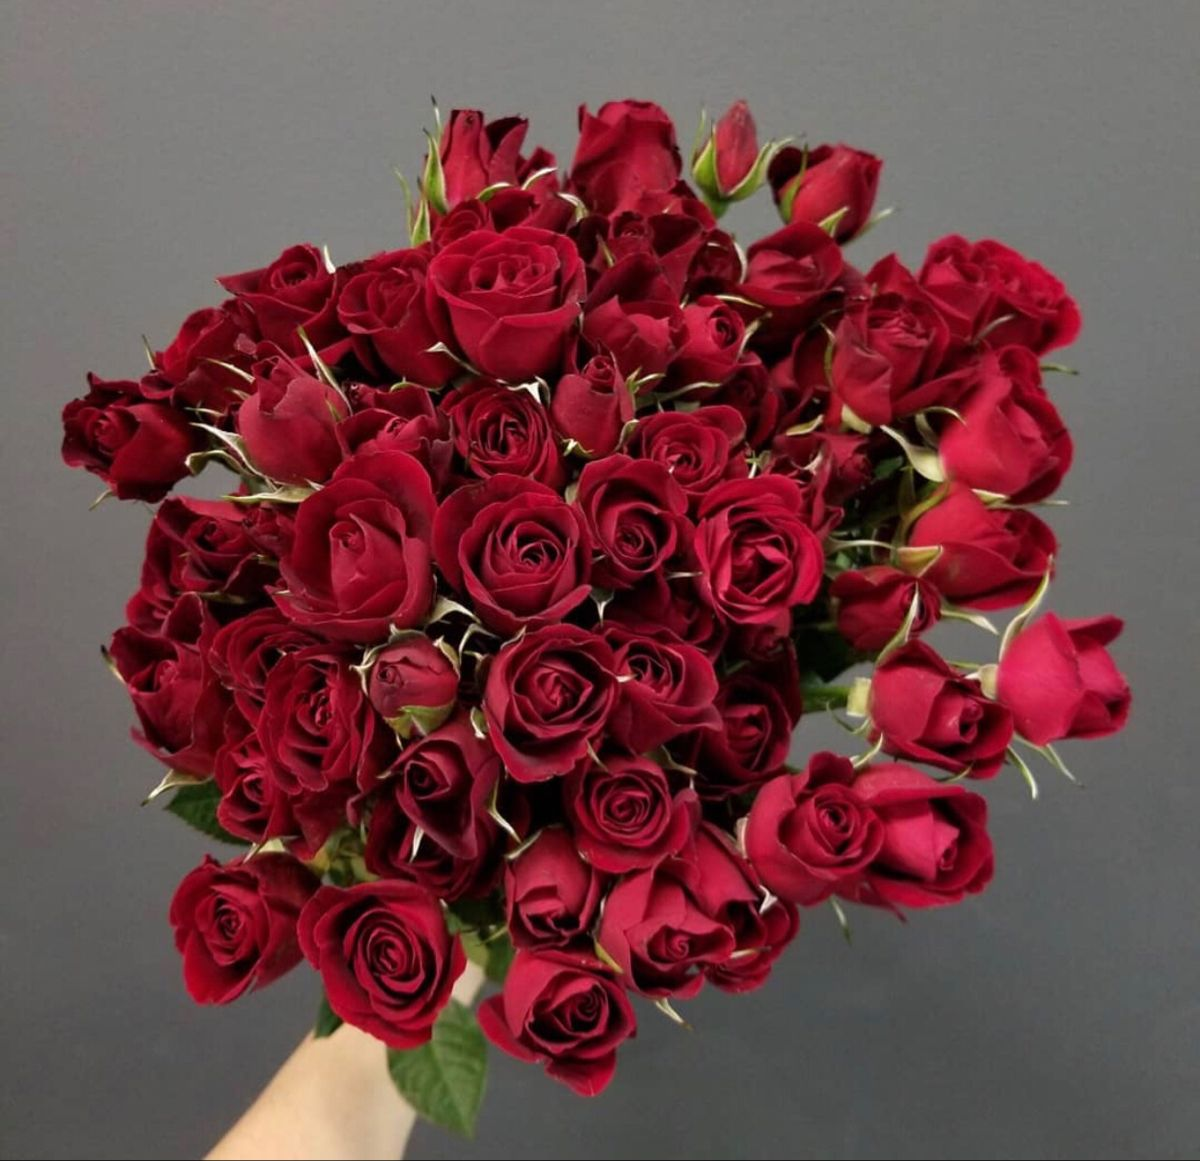 Red Spray Roses In 2020 Spray Roses Wholesale Flowers Wholesale Roses